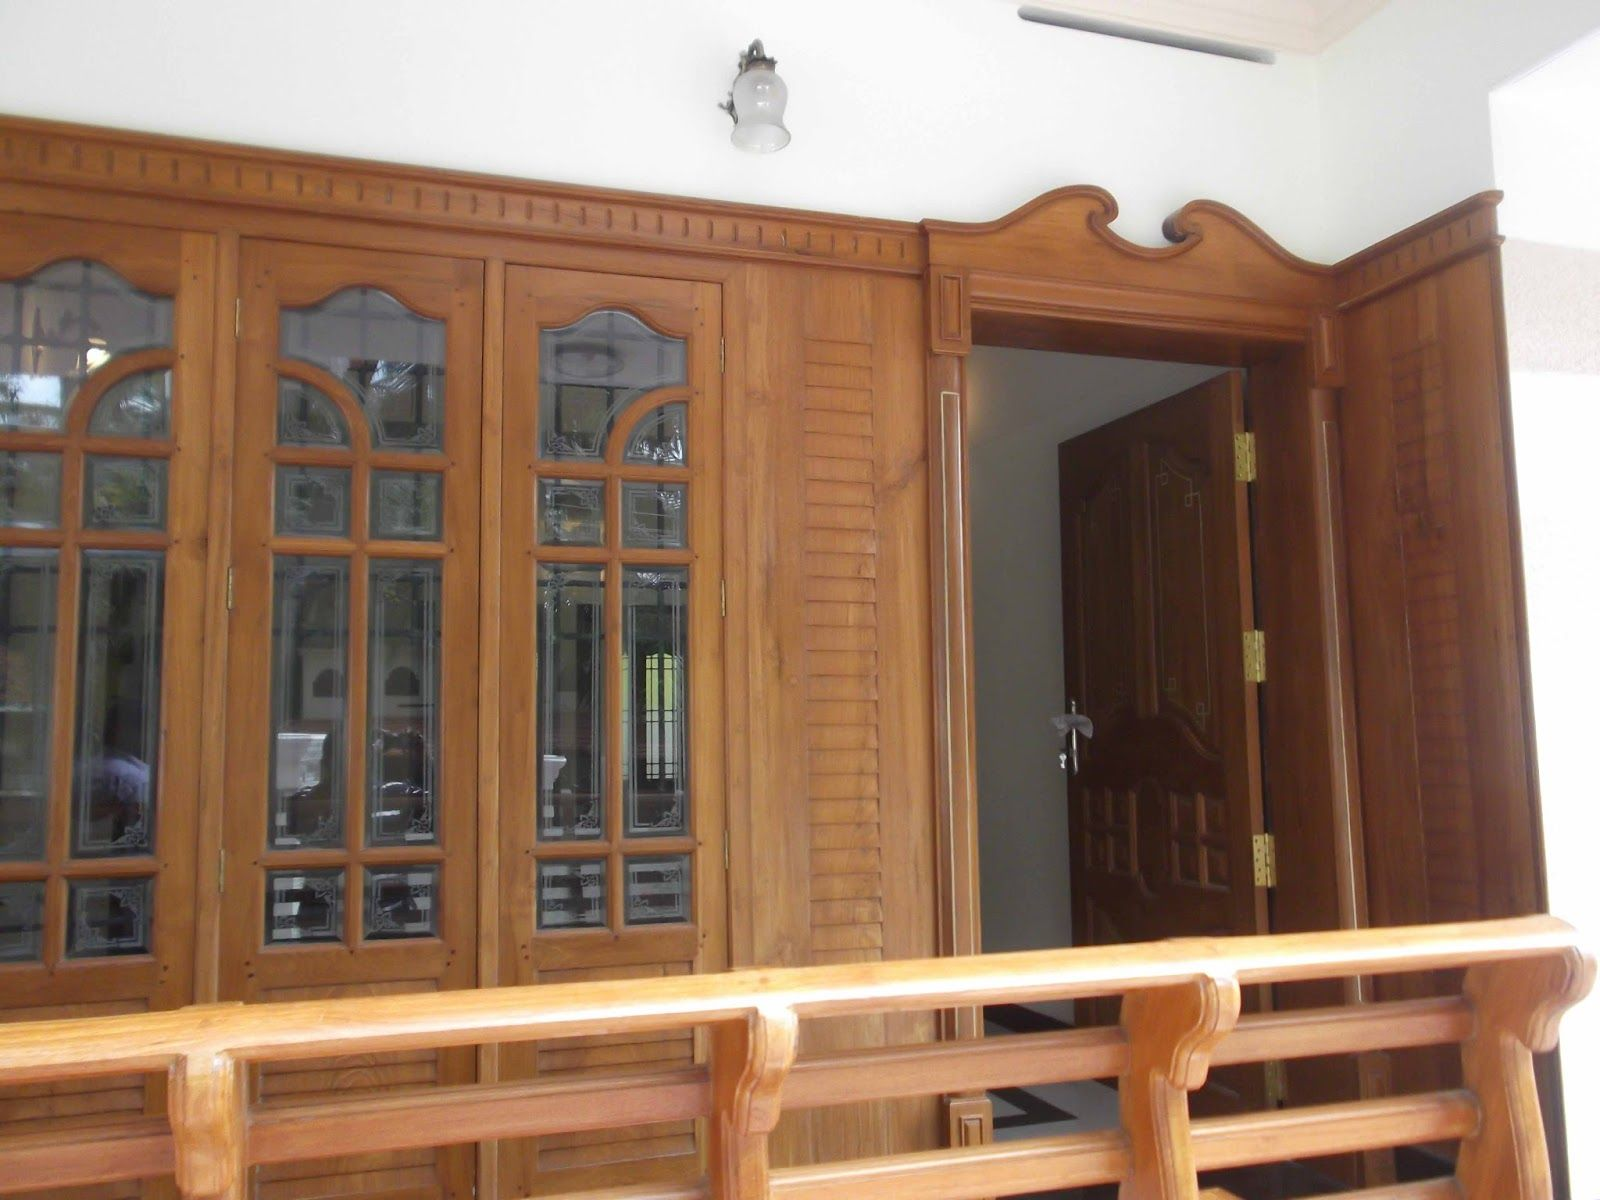 Kerala house front door designs models front doors Front entrance ideas interior